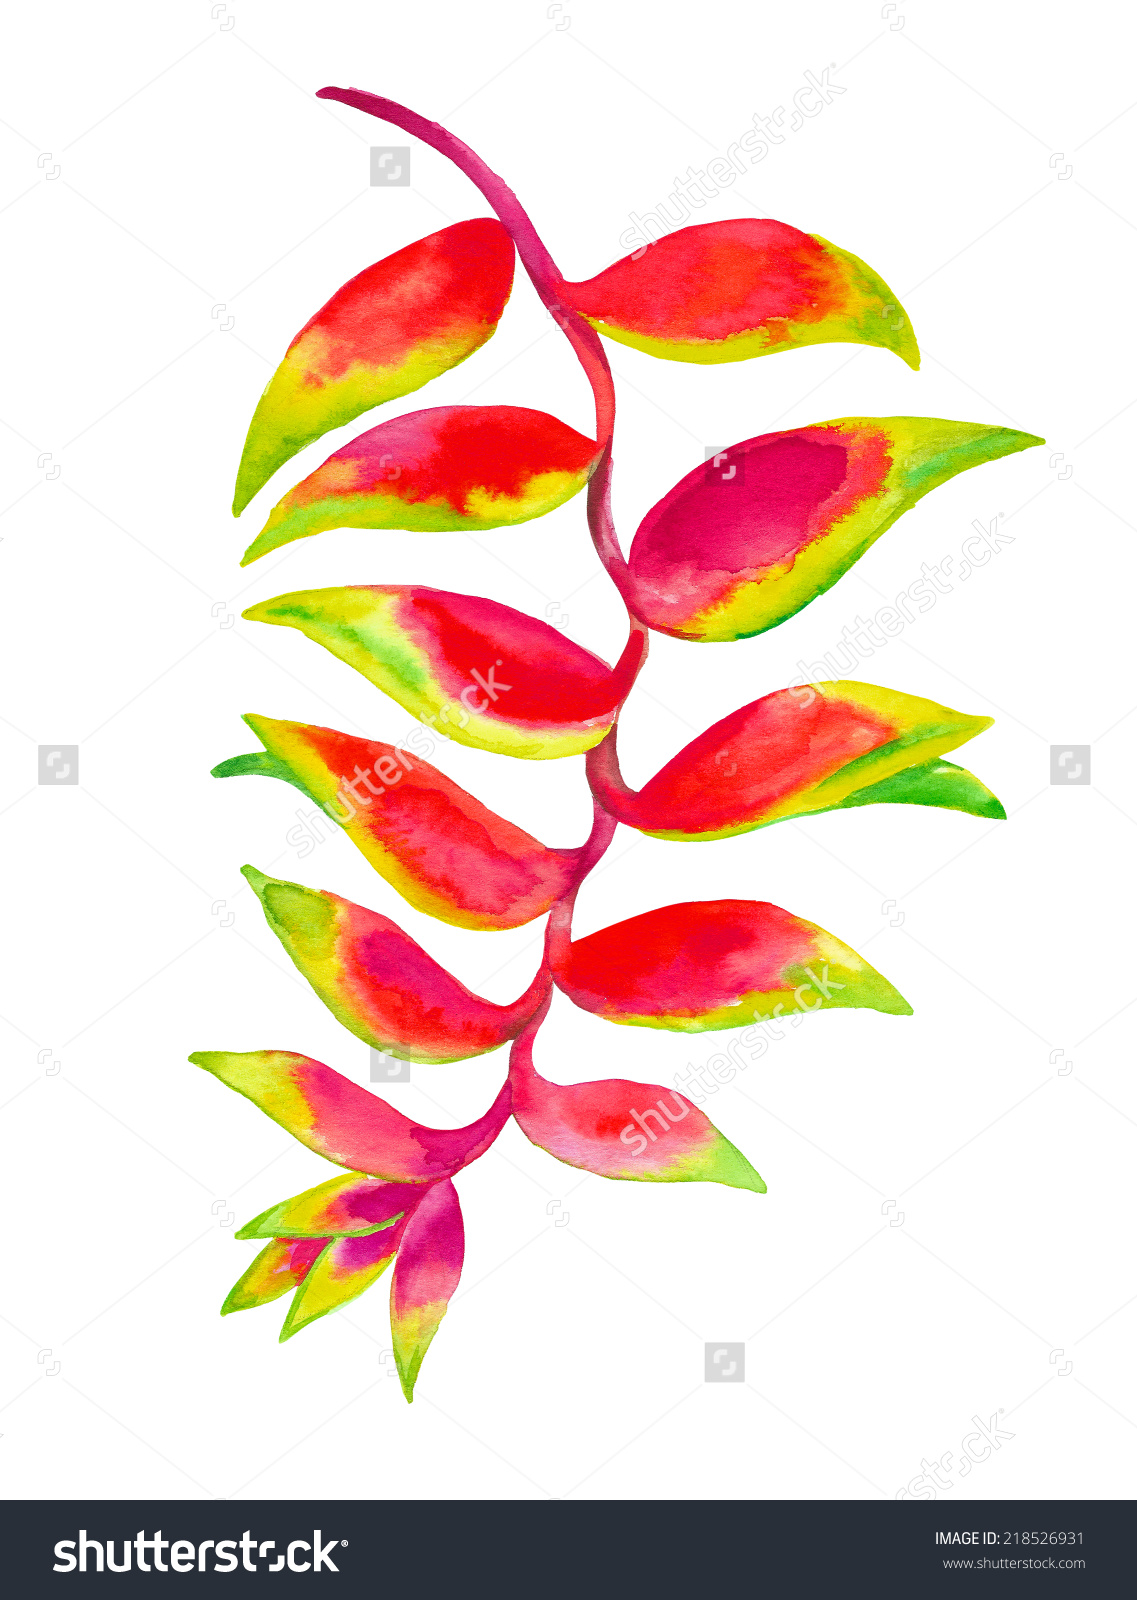 Heliconia clipart #19, Download drawings